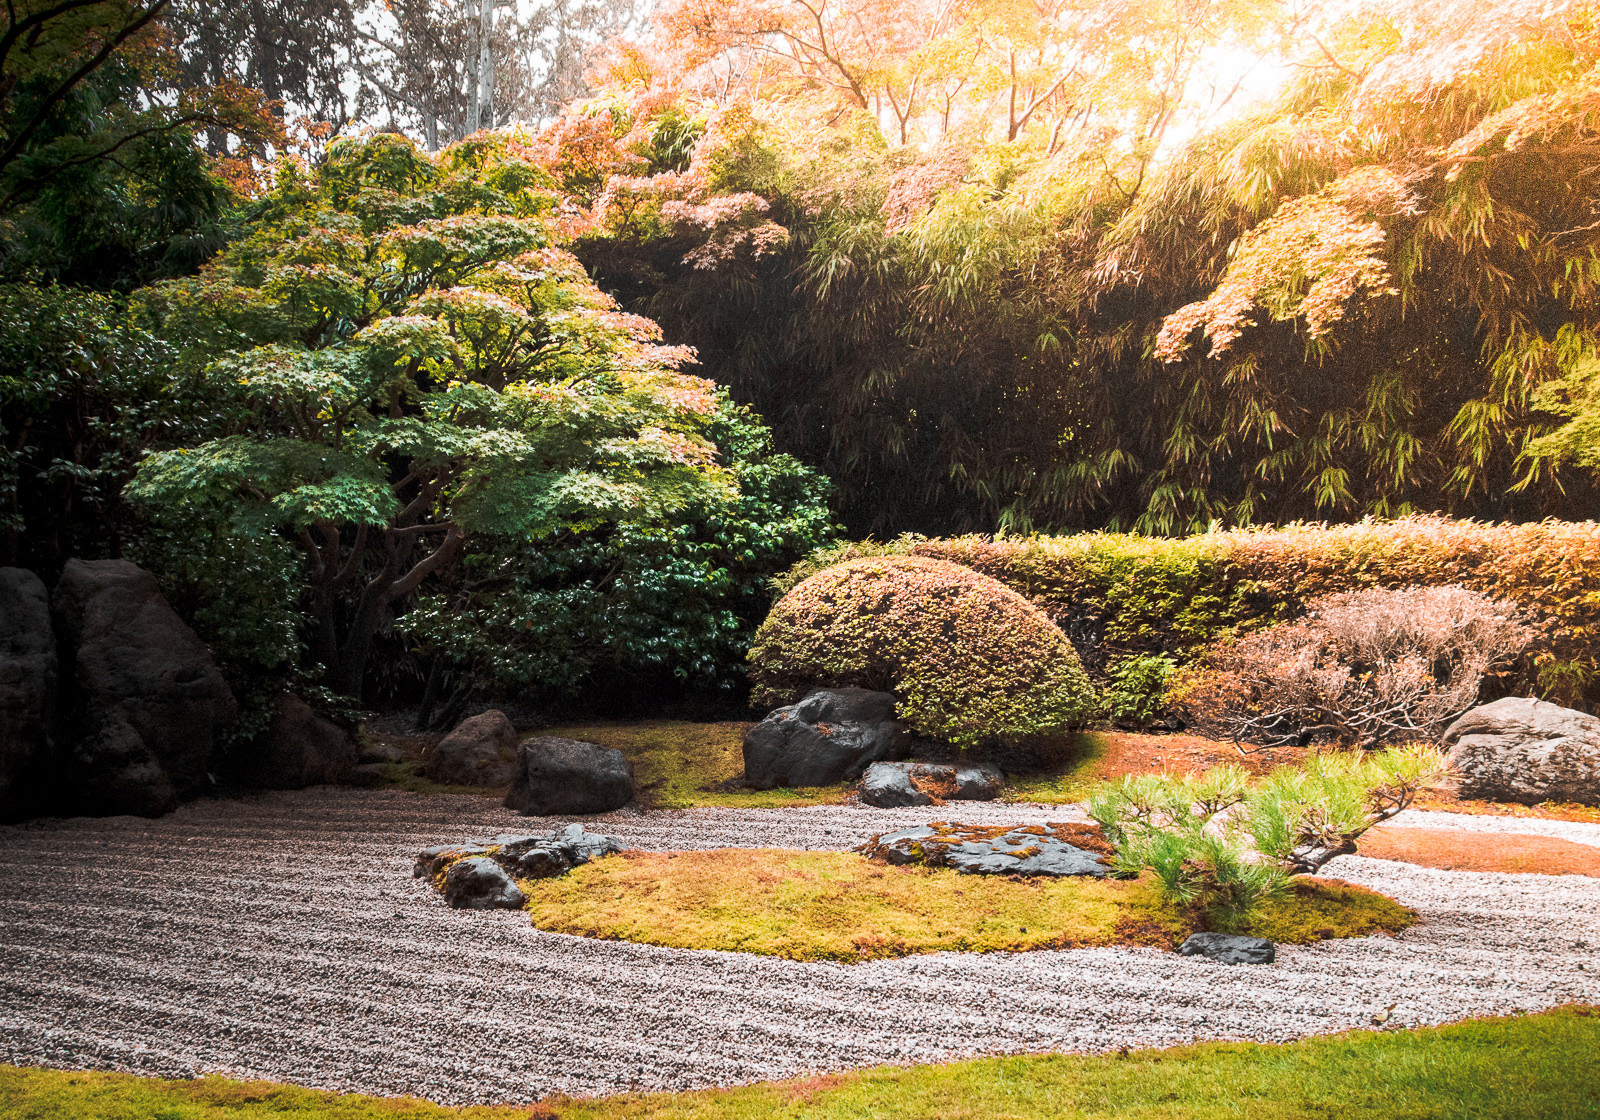 There is nothing more peaceful than having a picnic at a Japanese Zen Garden.